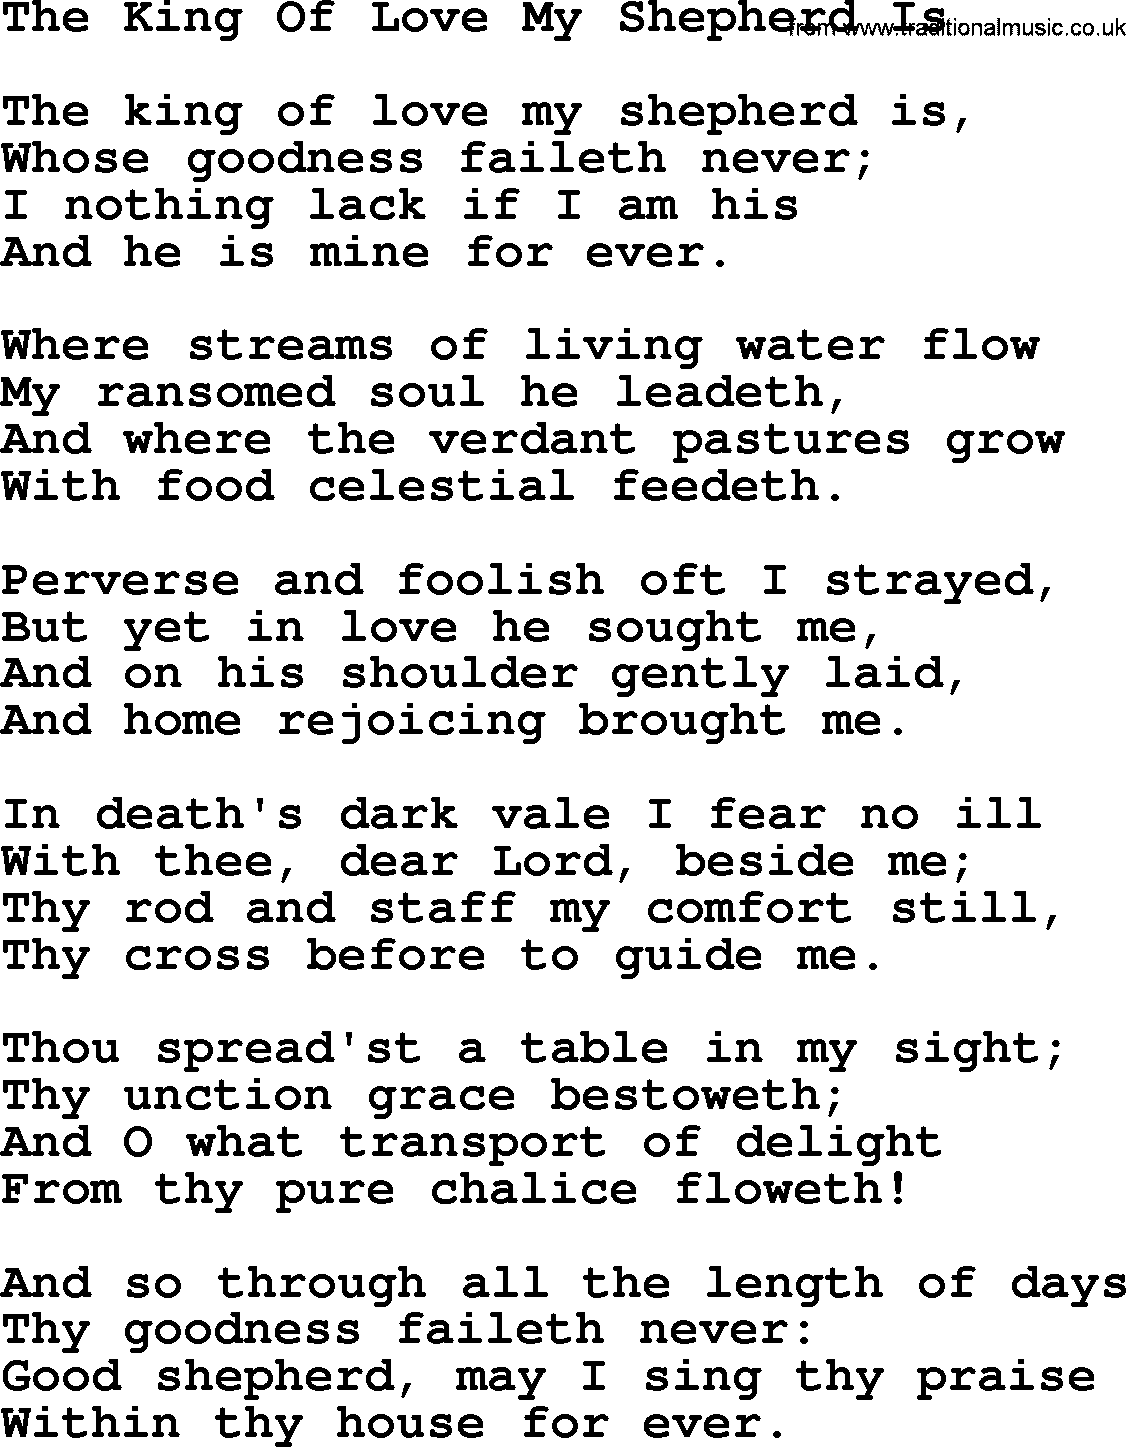 Wedding Hymns And Songs The King Of Love My Shepherd Is Txt Lyrics Chords And Pdf